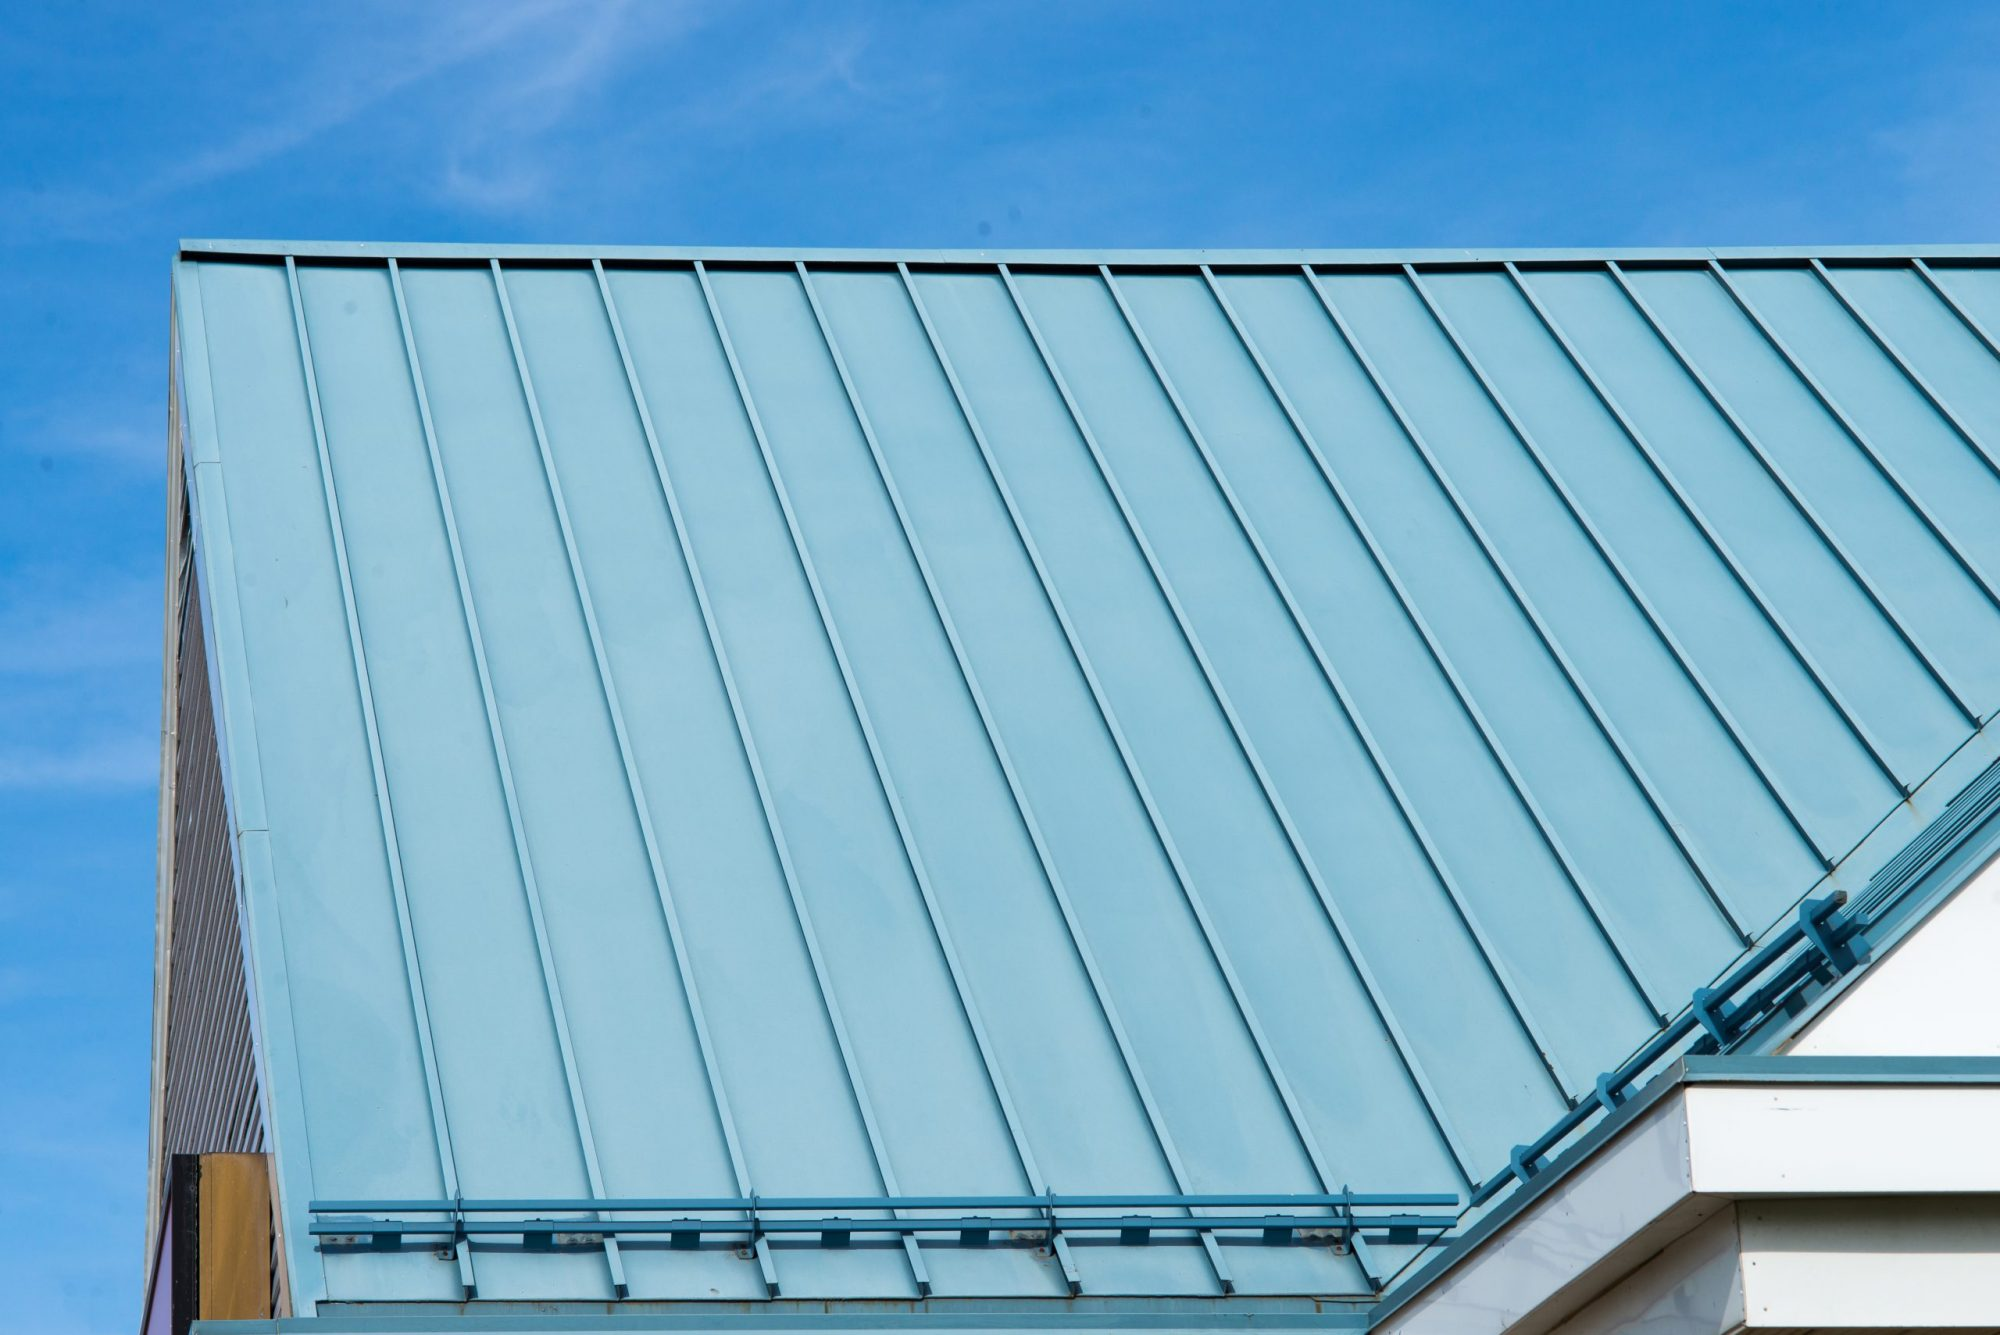 metal roofing company in collinsville troy metal roofs new metal roof installation aluminum roofing collinsville troy granite city alton edwardsville wood river illinois